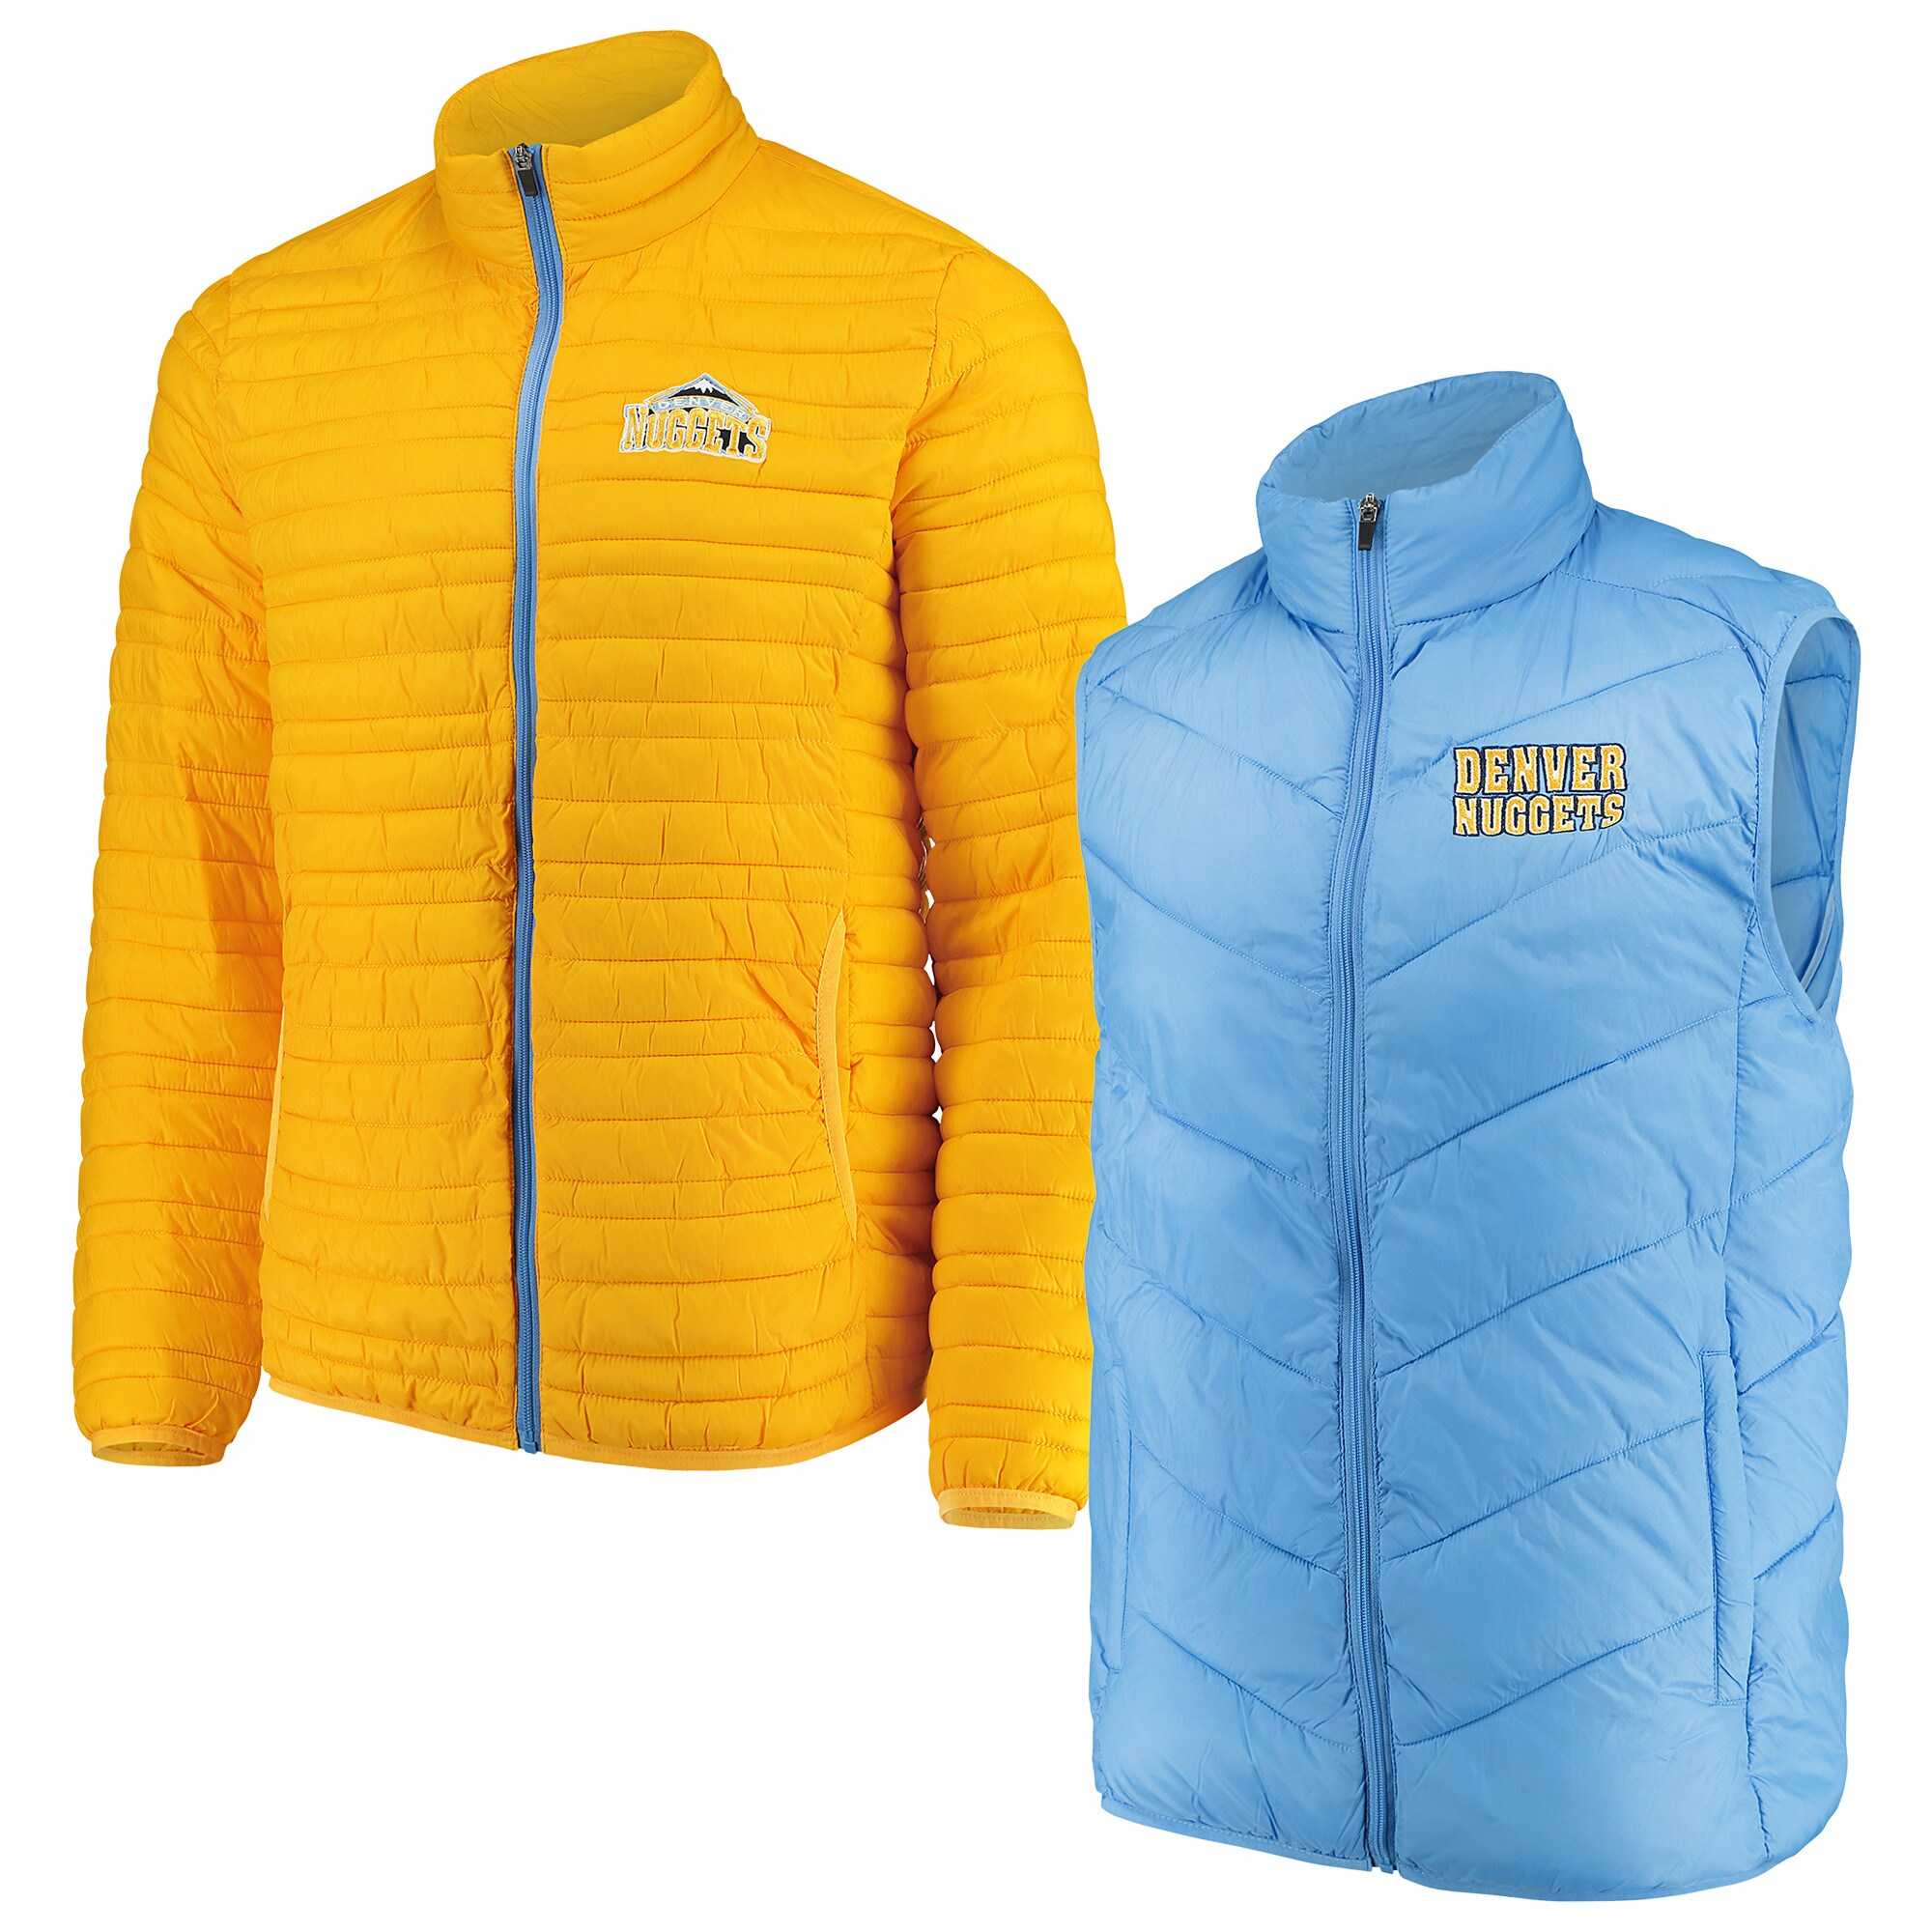 Denver Nuggets G-III Sports by Carl Banks Three & Out 3-in-1 System Full-Zip Vest & Jacket Set - Light Blue/Gold